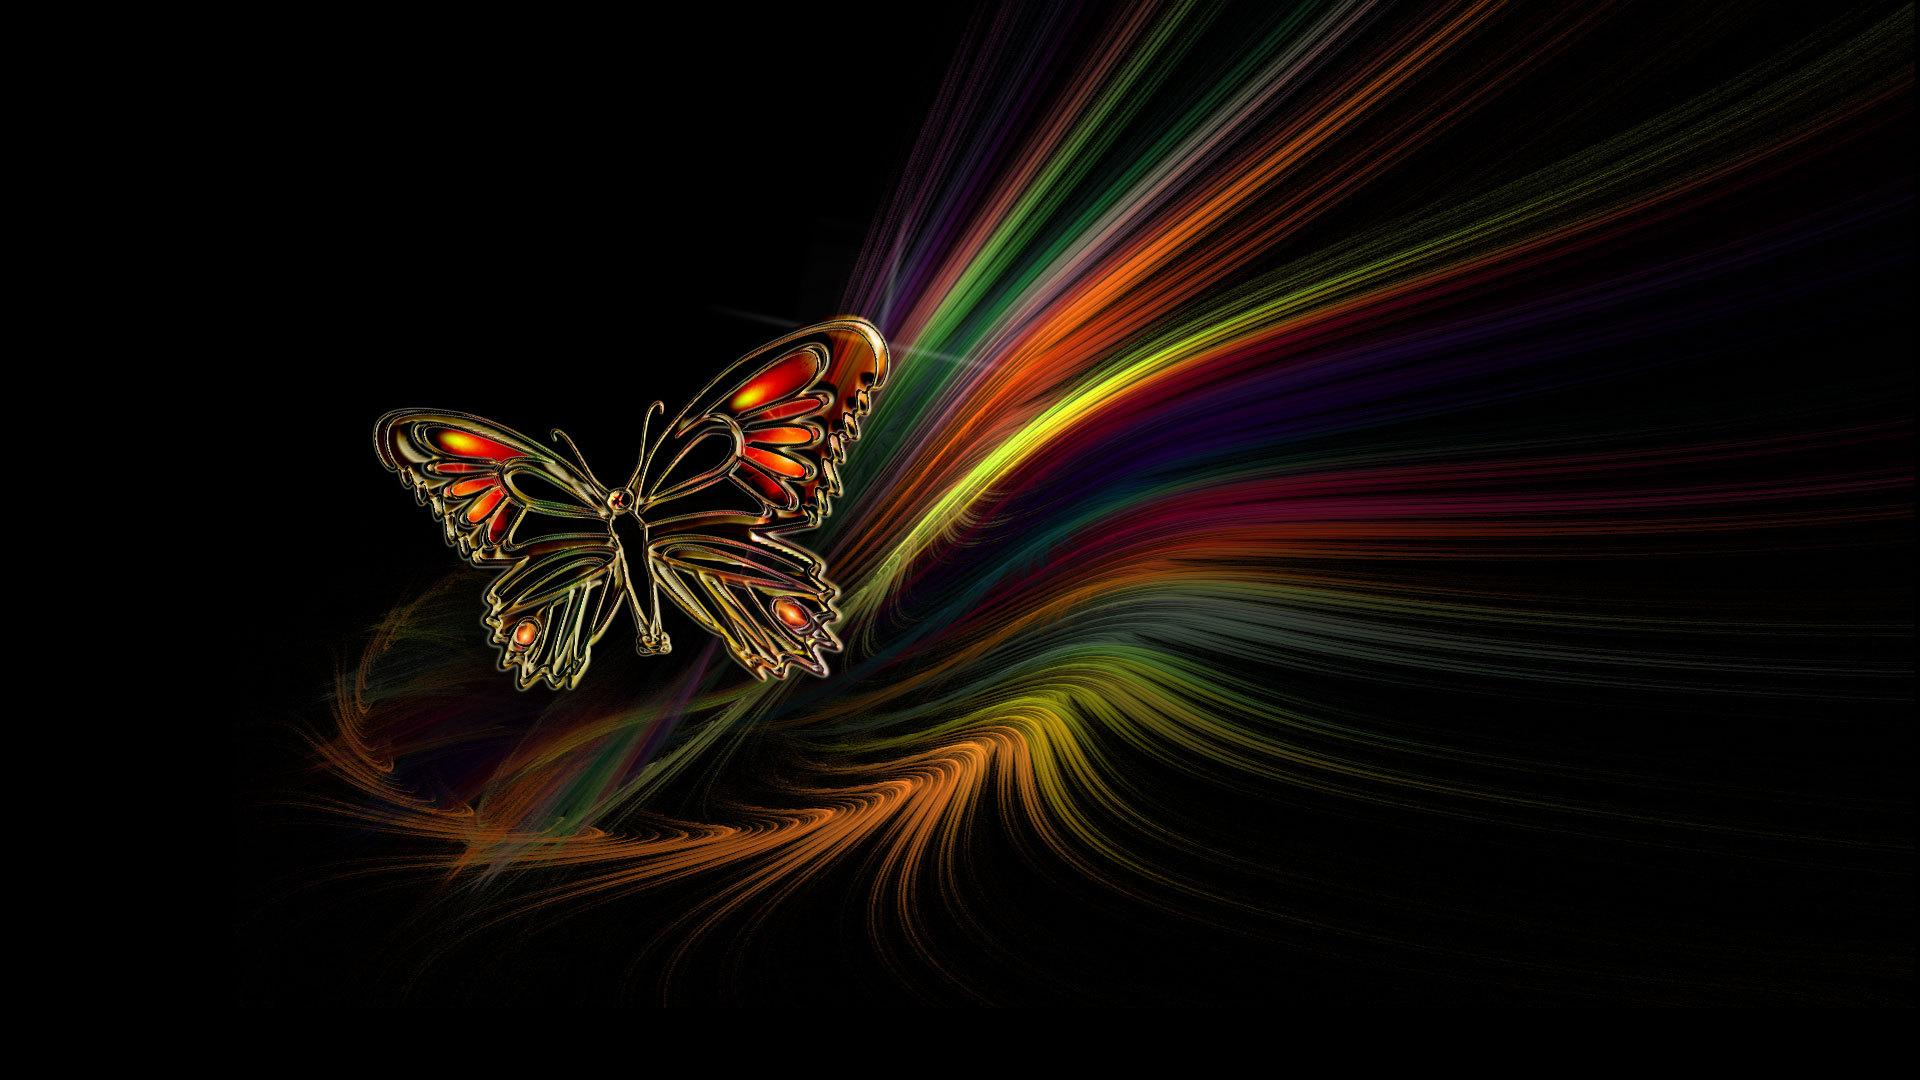 Hd wallpaper unique - Butterfly Abstract Hd Wallpaper Cool Unique Hd Wallpapers